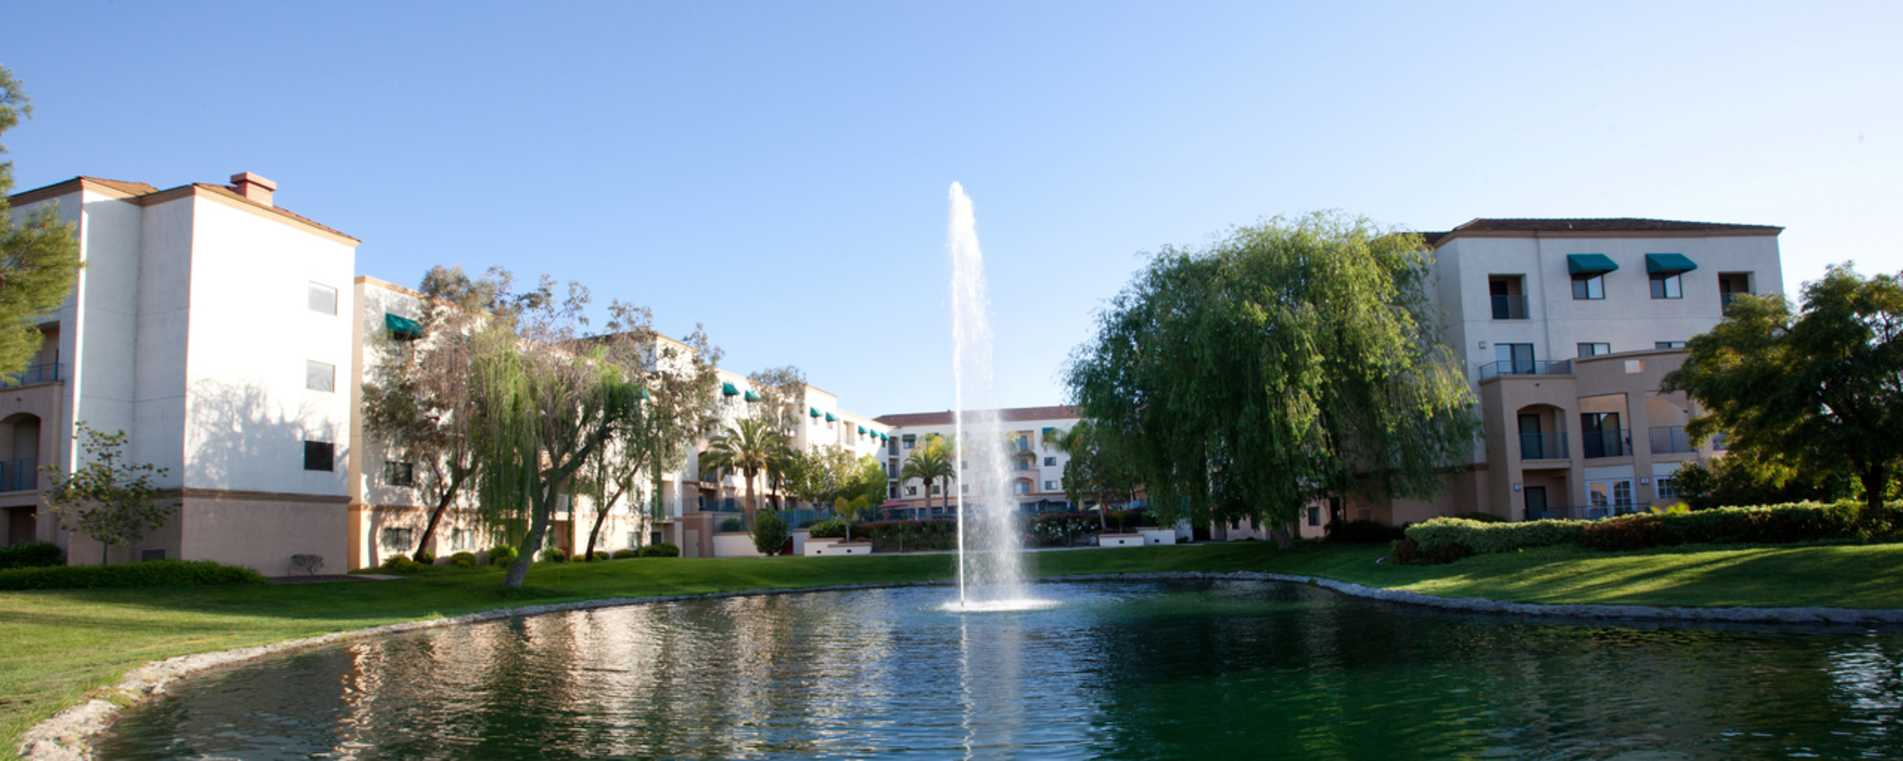 Outdoor Fountain Leisure Area - Embassy Suites Temecula